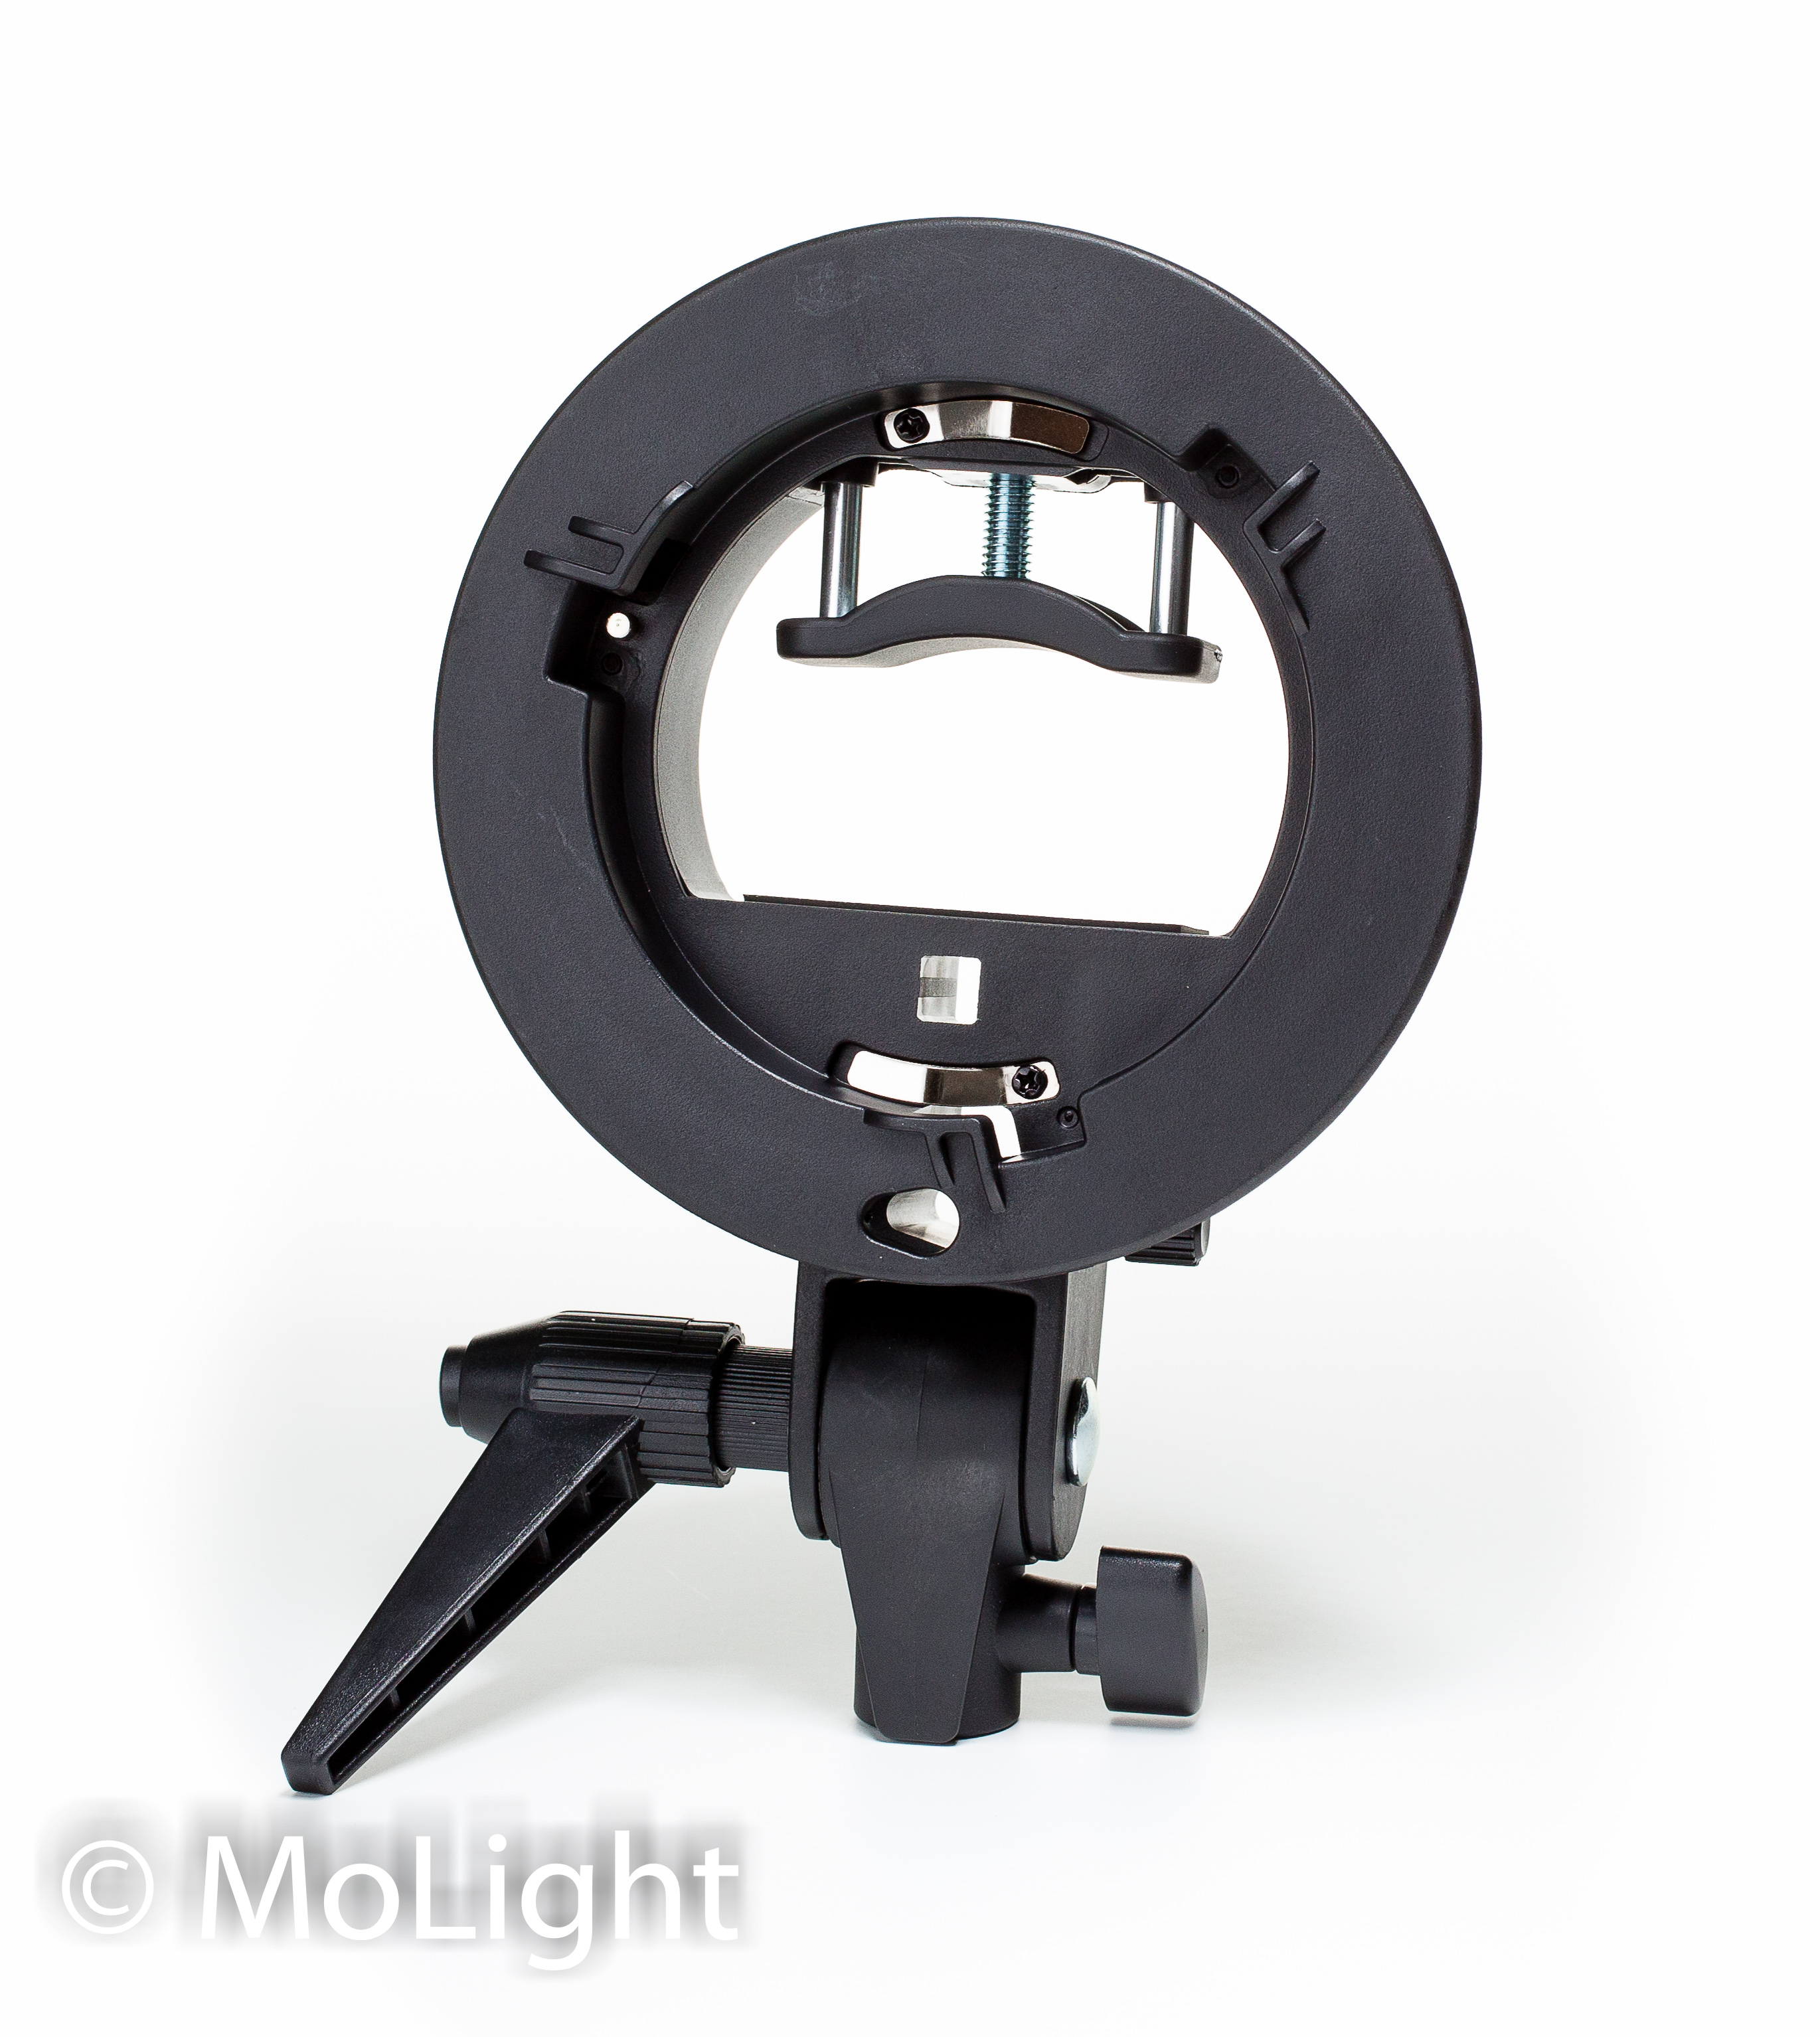 S-Type Bowens Speedlight Adapter